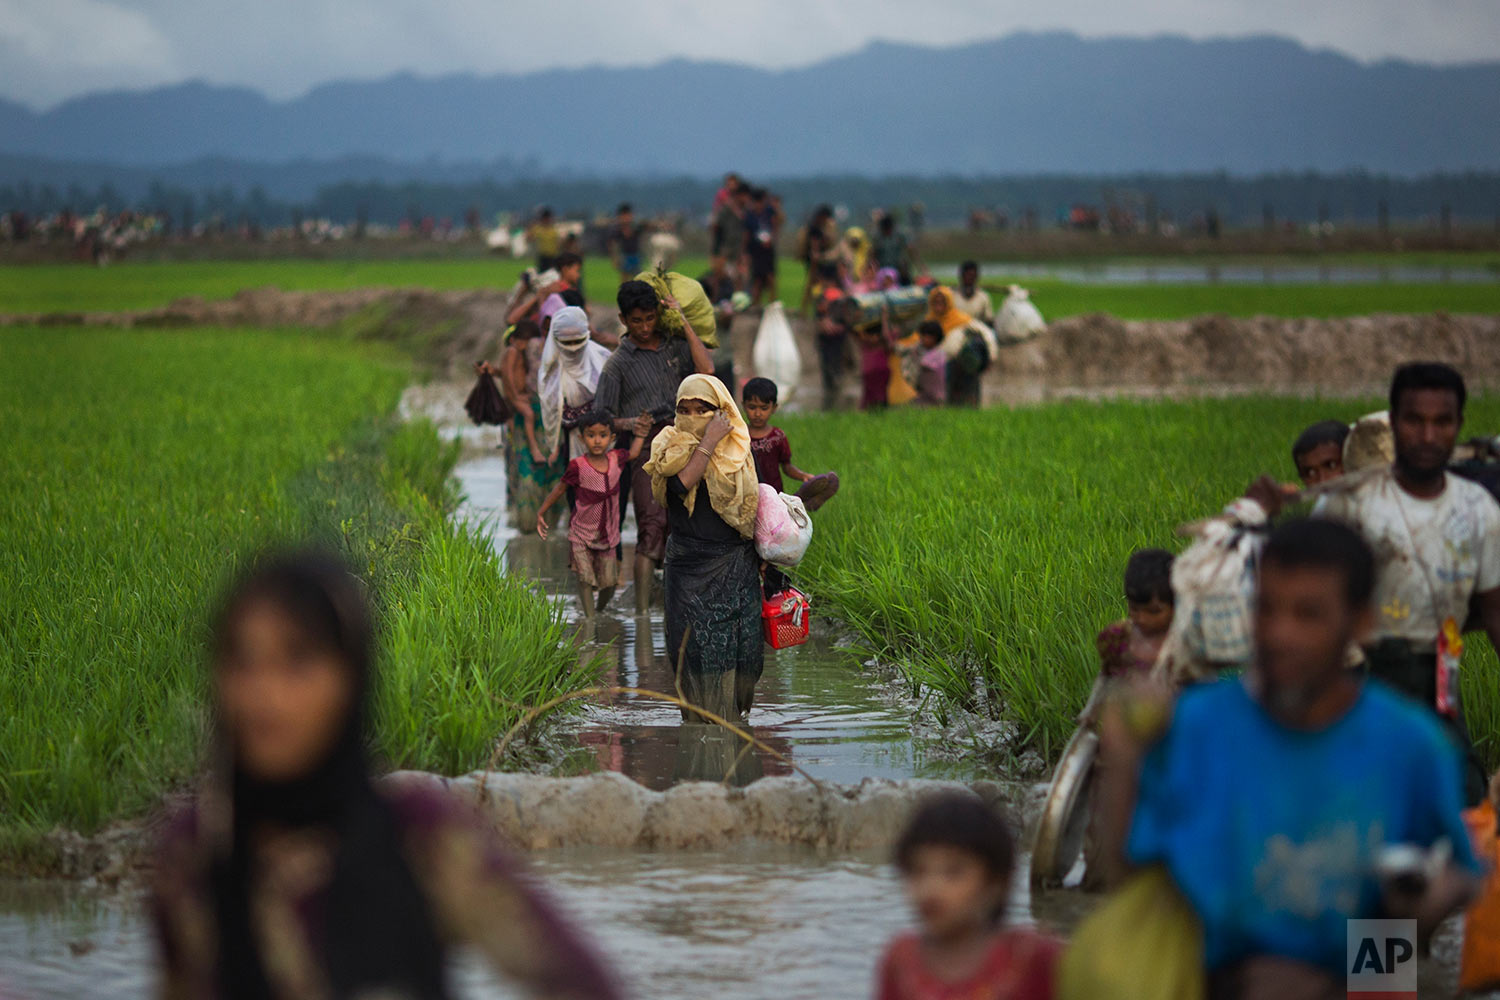 Myanmar's Rohingya ethnic minority members walk through rice fields after crossing over to the Bangladesh side of the border near Cox's Bazar's Teknaf area, Friday, Sept. 1, 2017. Thousands of Rohingya Muslims are pouring into Bangladesh, part of an exodus of the beleaguered ethnic group from neighbouring Myanmar that began when violence erupted there on August 25. Most of Myanmar's estimated 1 million Rohingya live in northern Rakhine state. They face severe persecution, with the government refusing to recognize them as a legitimate native ethnic minority, leaving them without citizenship and basic rights. (AP Photo/Bernat Armangue)